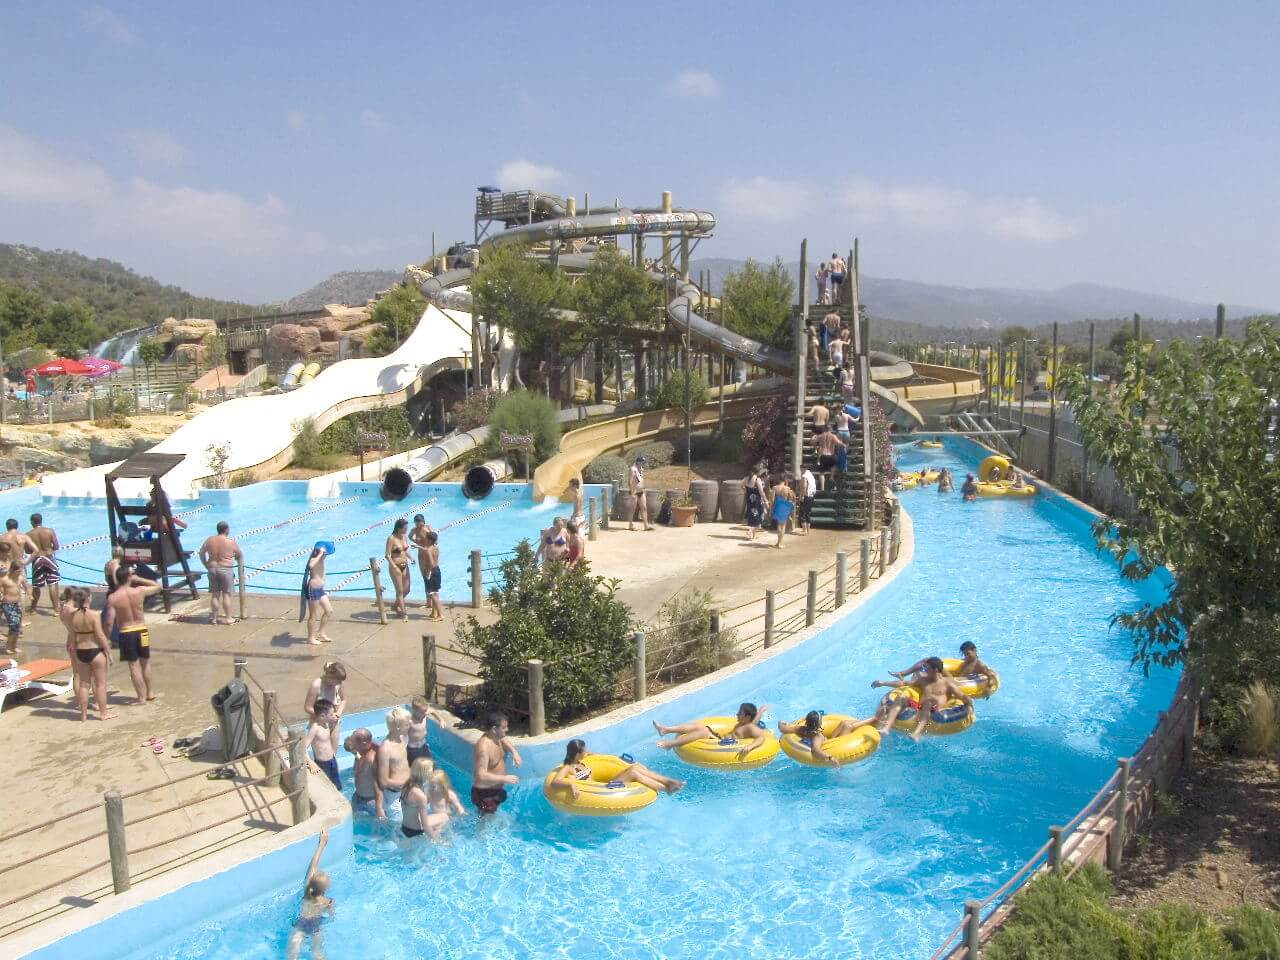 lazy-river-waterpark-aqualand-el-arenal-mallorca